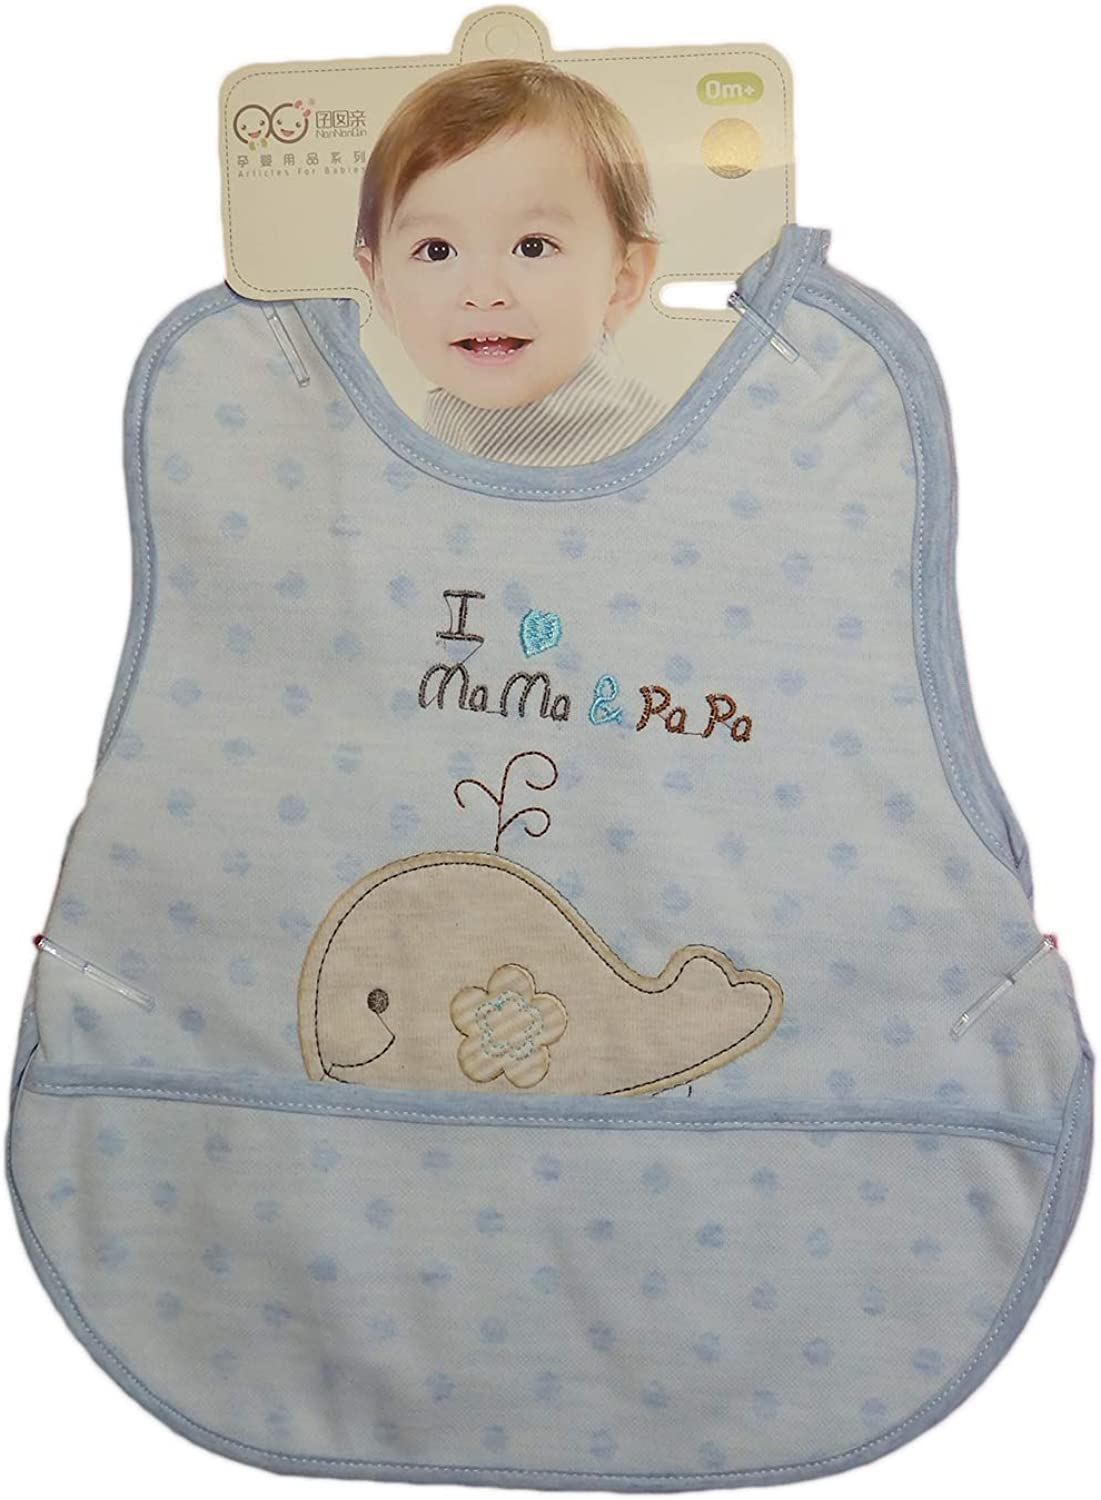 Babies Max 75% OFF and Toddlers Color Baltimore Mall cotton embroidered P with double-sided